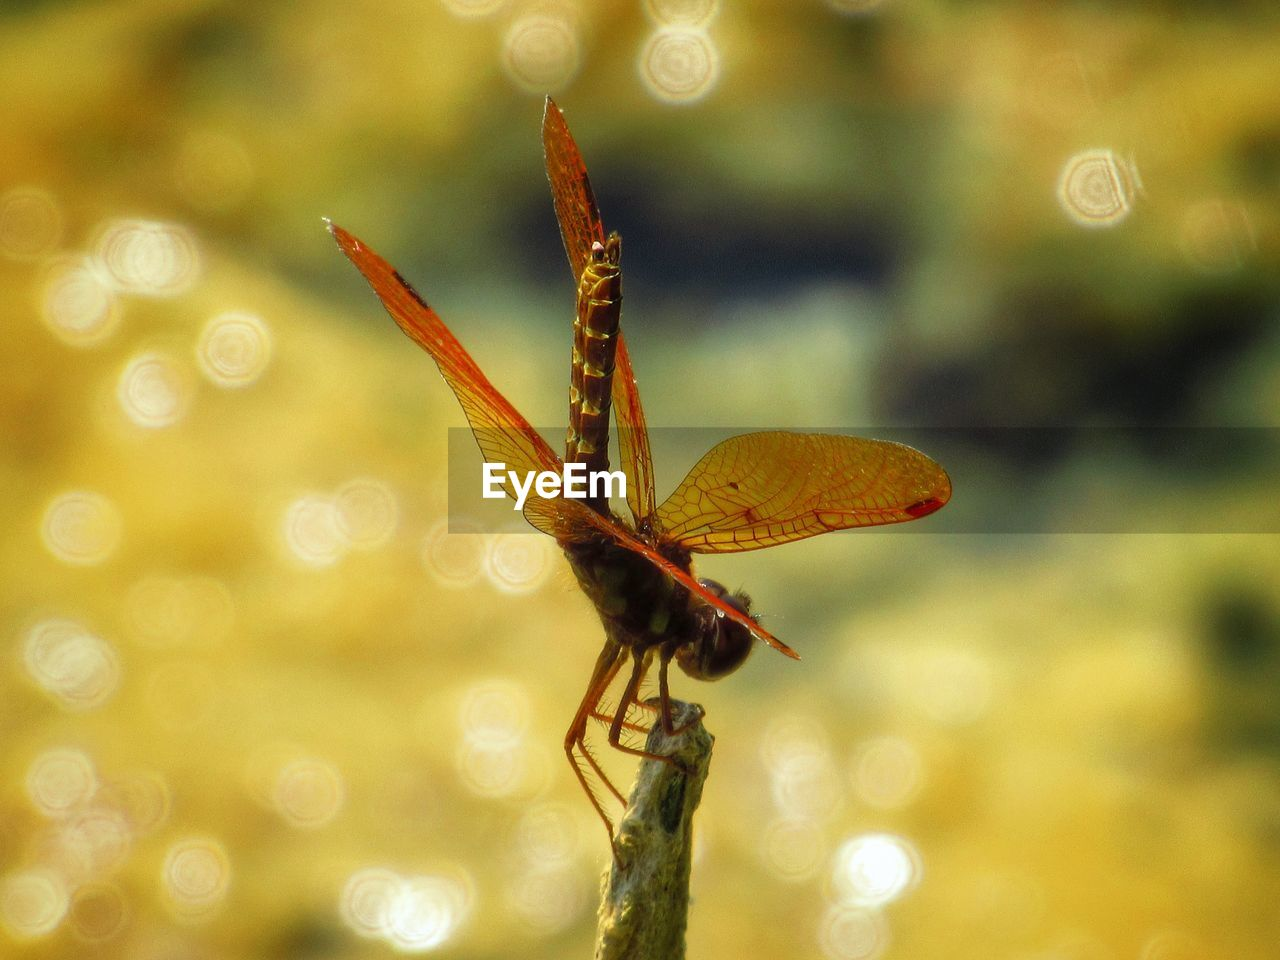 insect, invertebrate, one animal, animal wildlife, animal themes, animals in the wild, close-up, animal, animal wing, focus on foreground, plant, no people, beauty in nature, nature, day, outdoors, dragonfly, growth, flower, orange color, butterfly - insect